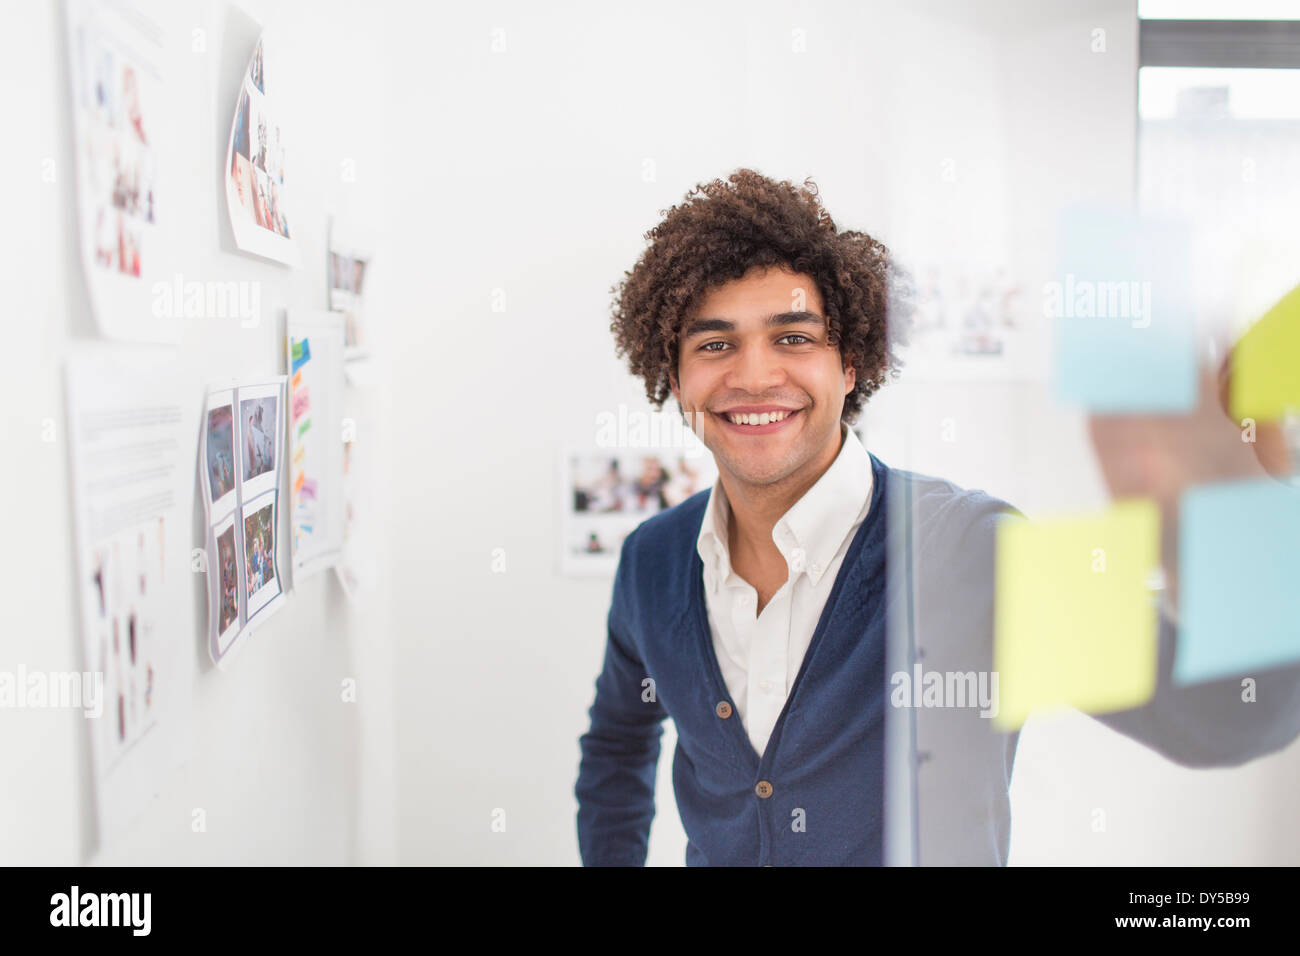 Young man with adhesive notes, smiling - Stock Image